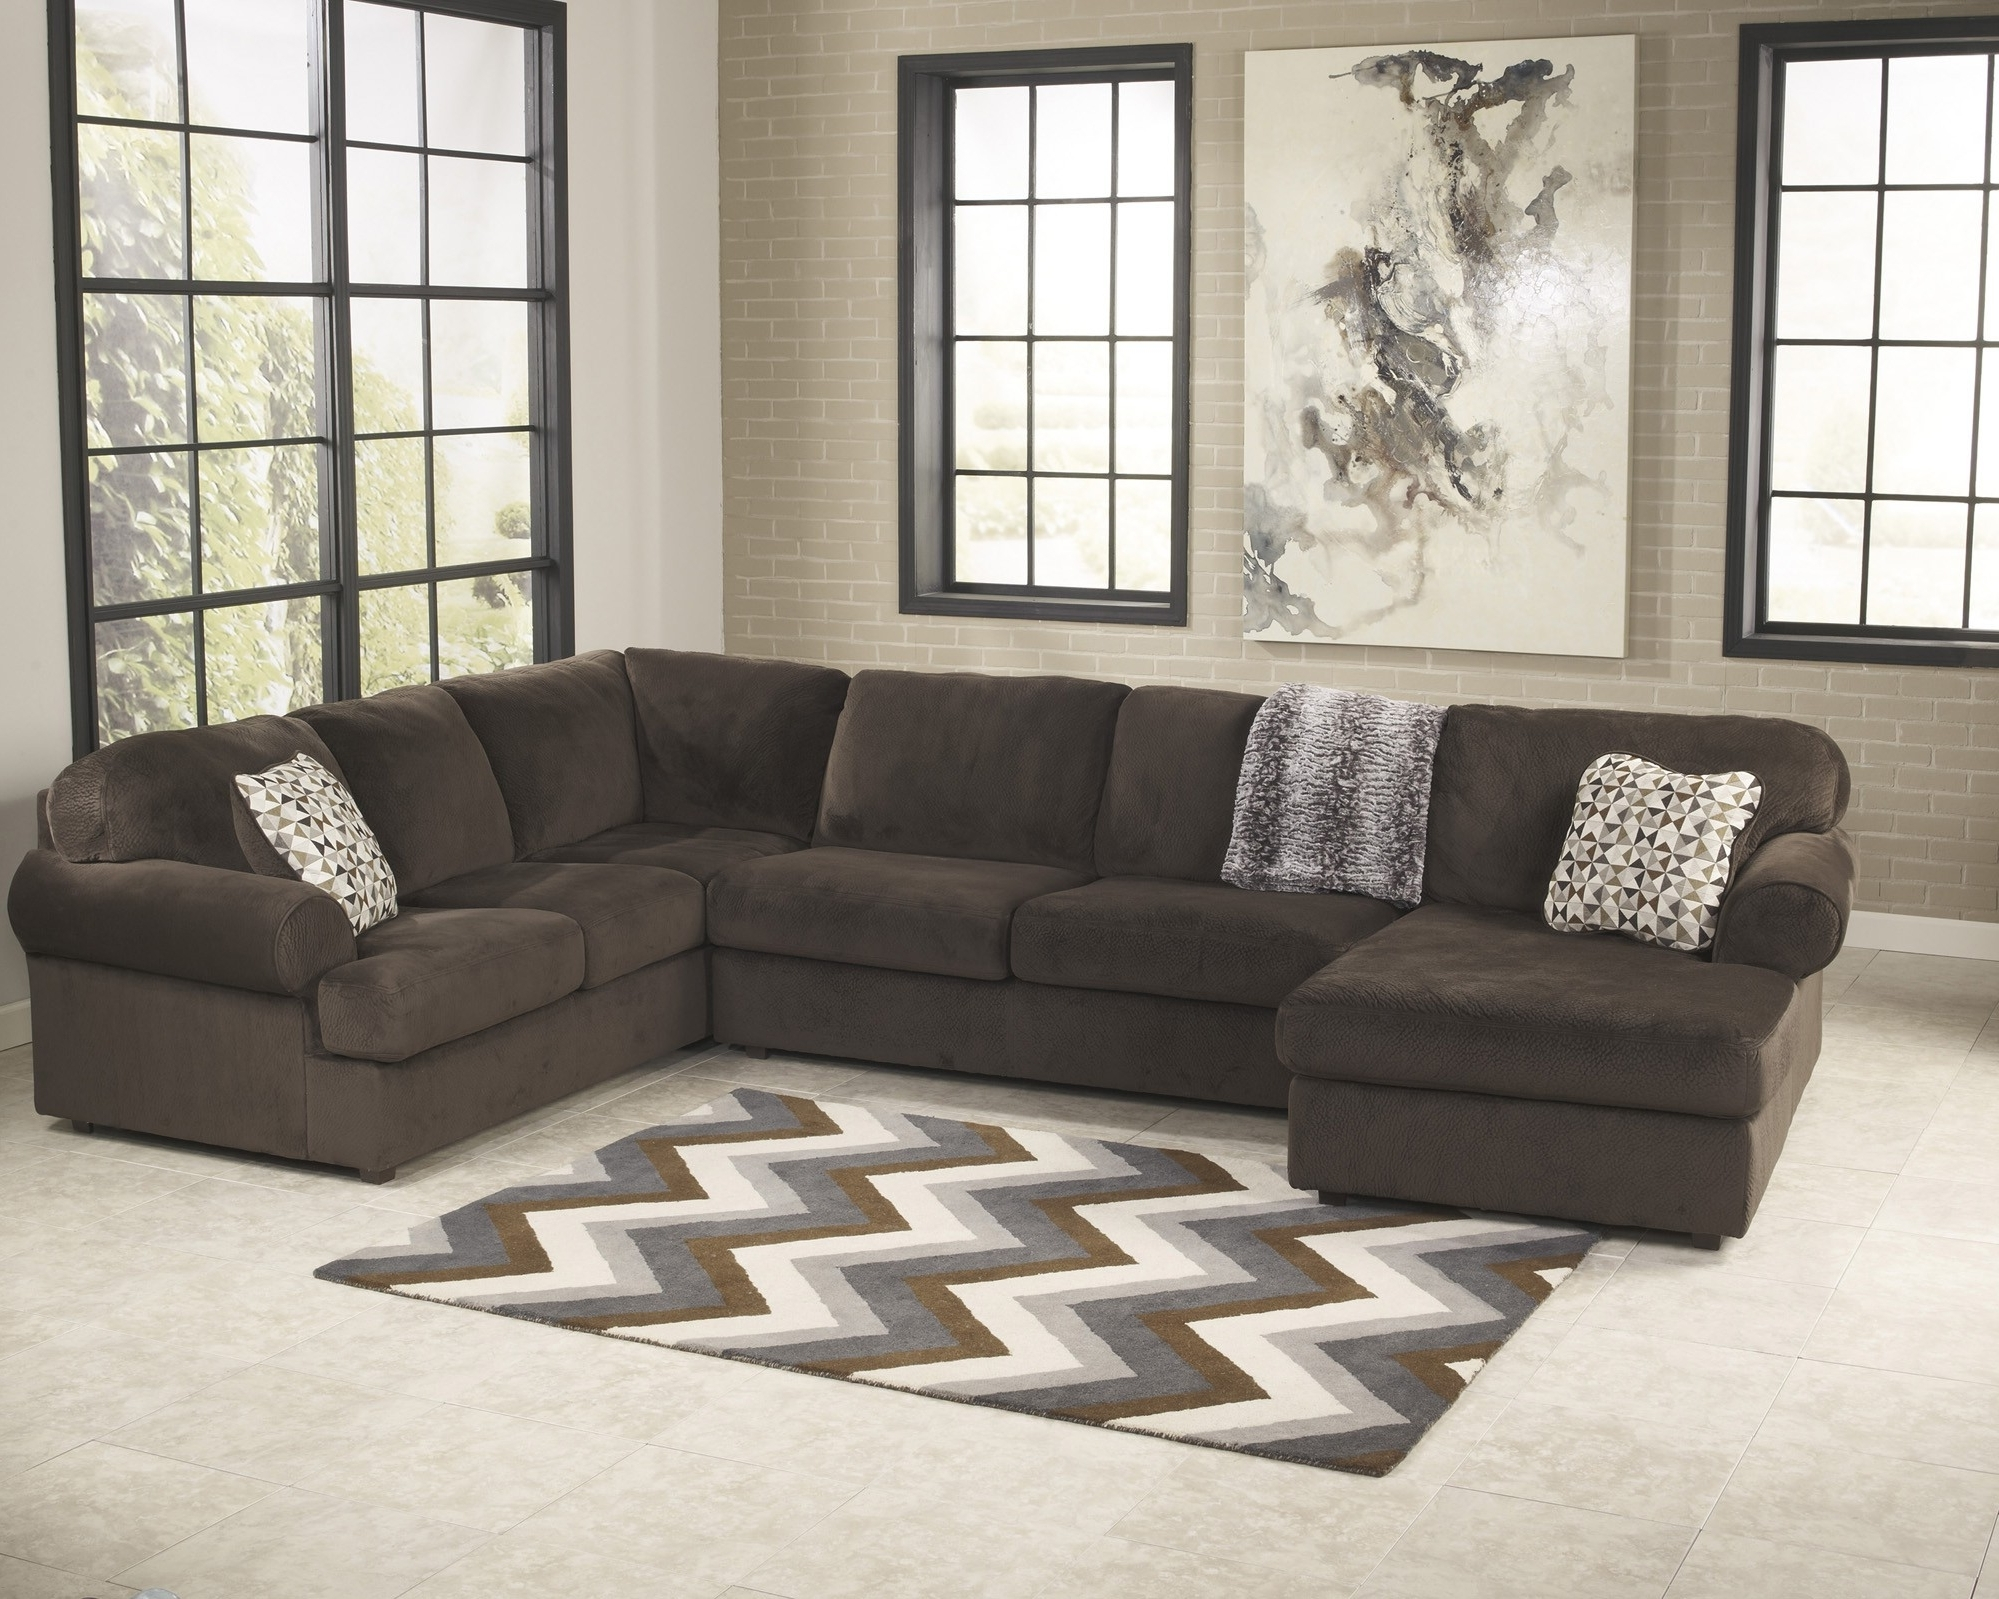 Most Recent Jessa Place Chocolate 3 Piece Sectional Sofa For $ (View 13 of 20)